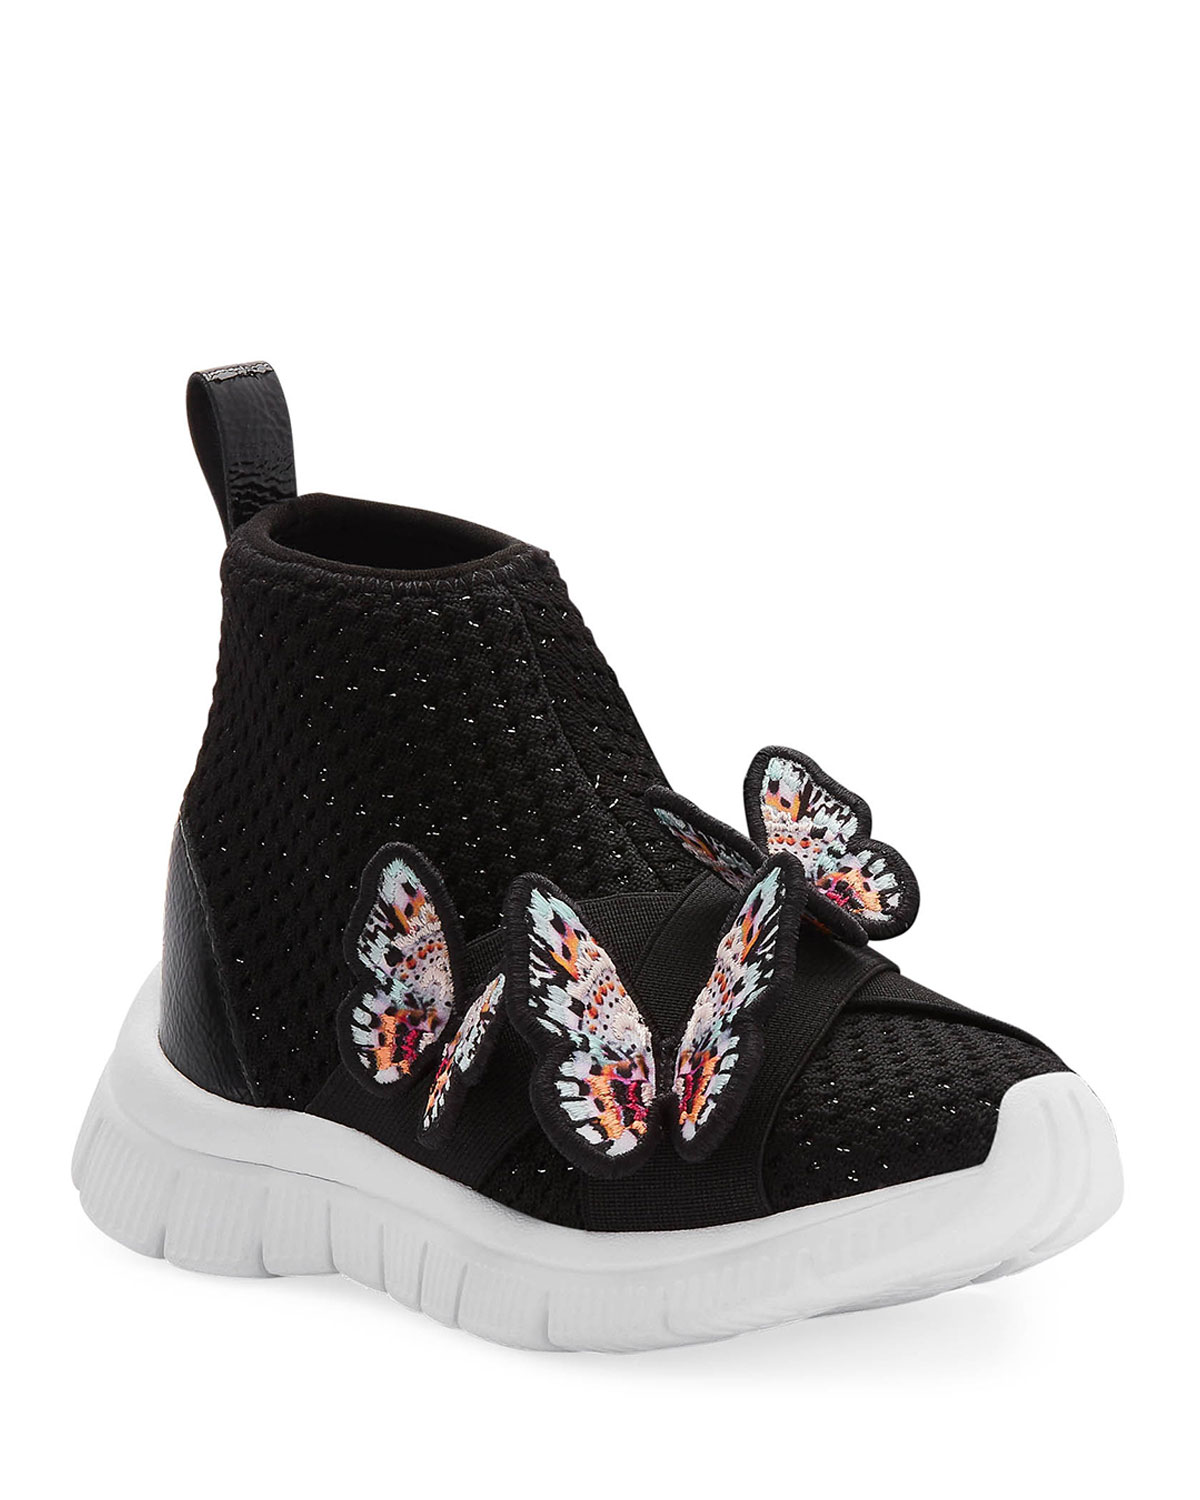 Maisy Lurex Knit Mid-Top Sneakers w/ 3D Butterfly Details, Baby/Toddler/Kids